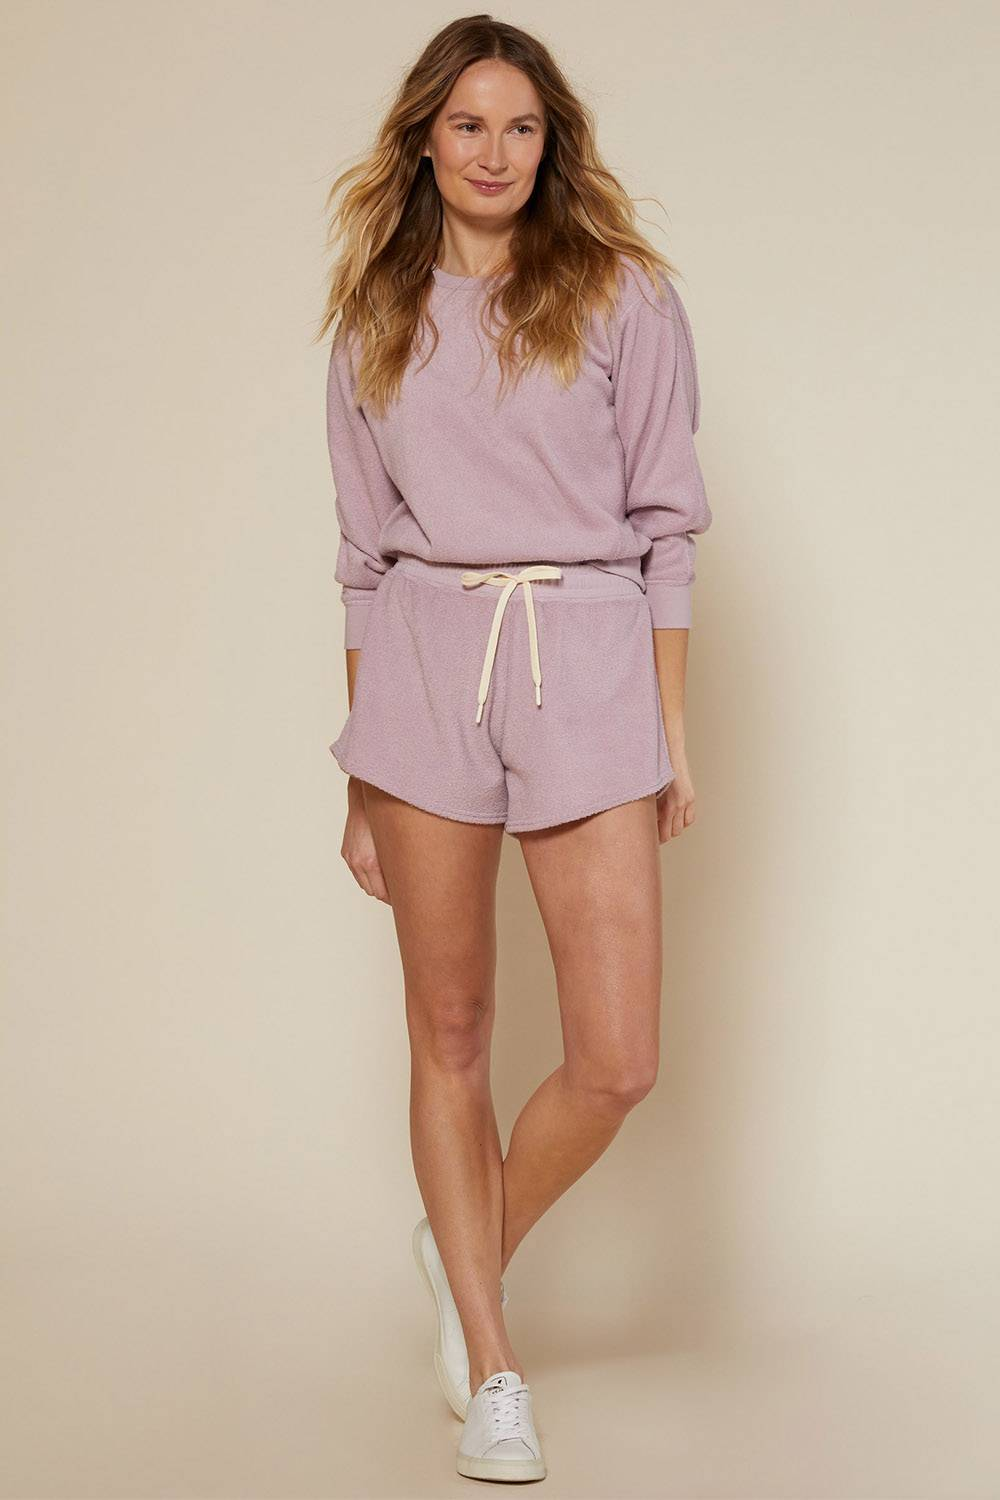 outerknown cute cheap pajama lounge shorts